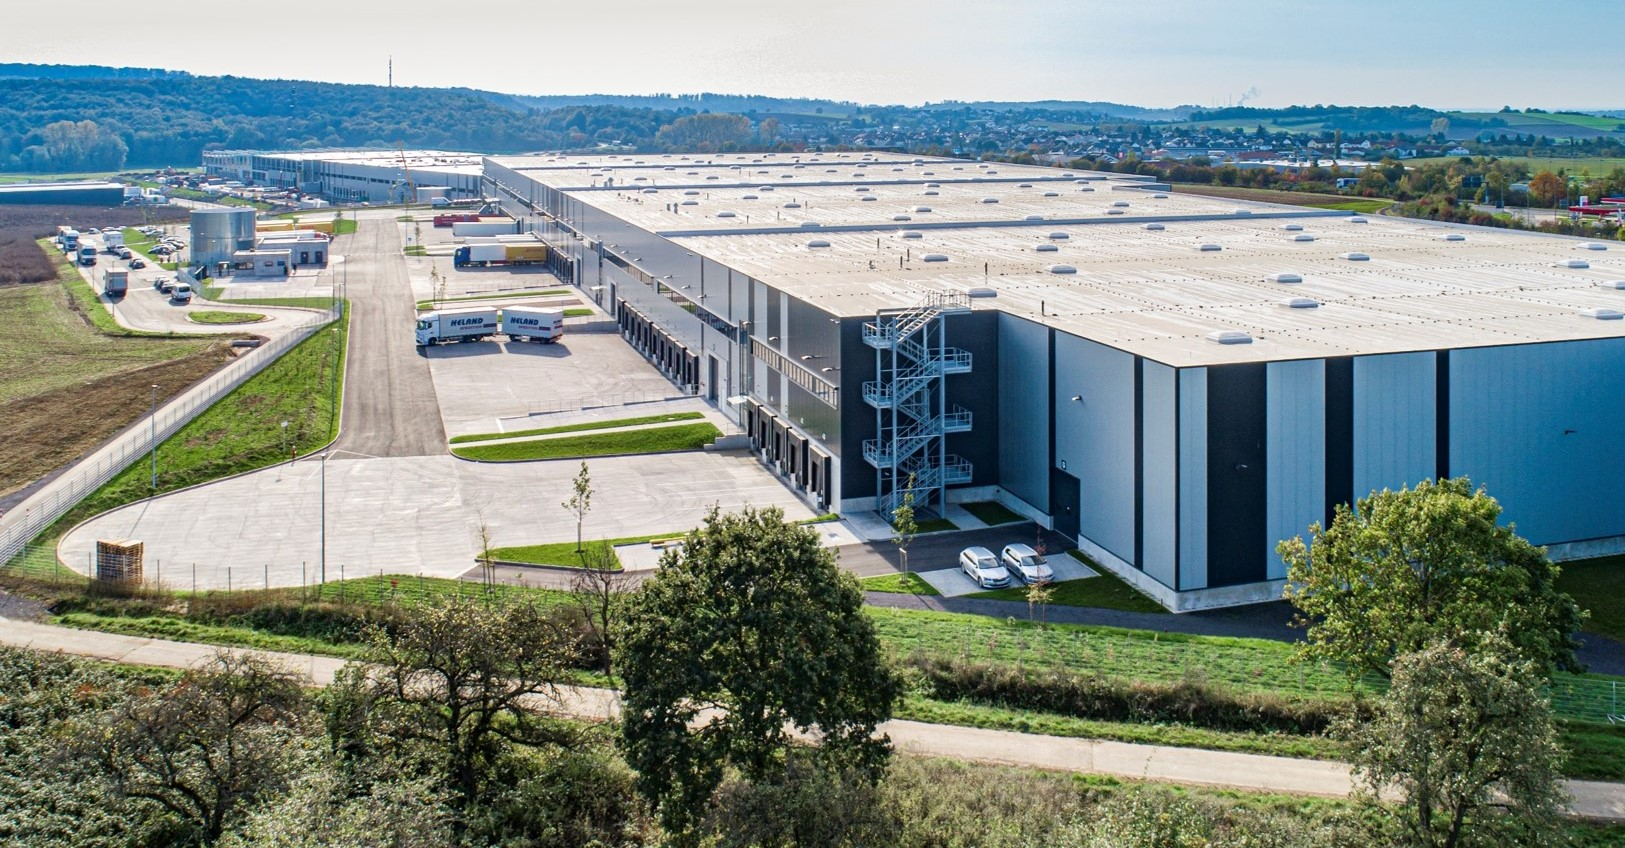 Logistics Real Estate Markets in Europe Not Impacted by Covid-19: 14% Growth Forecasted for 2021